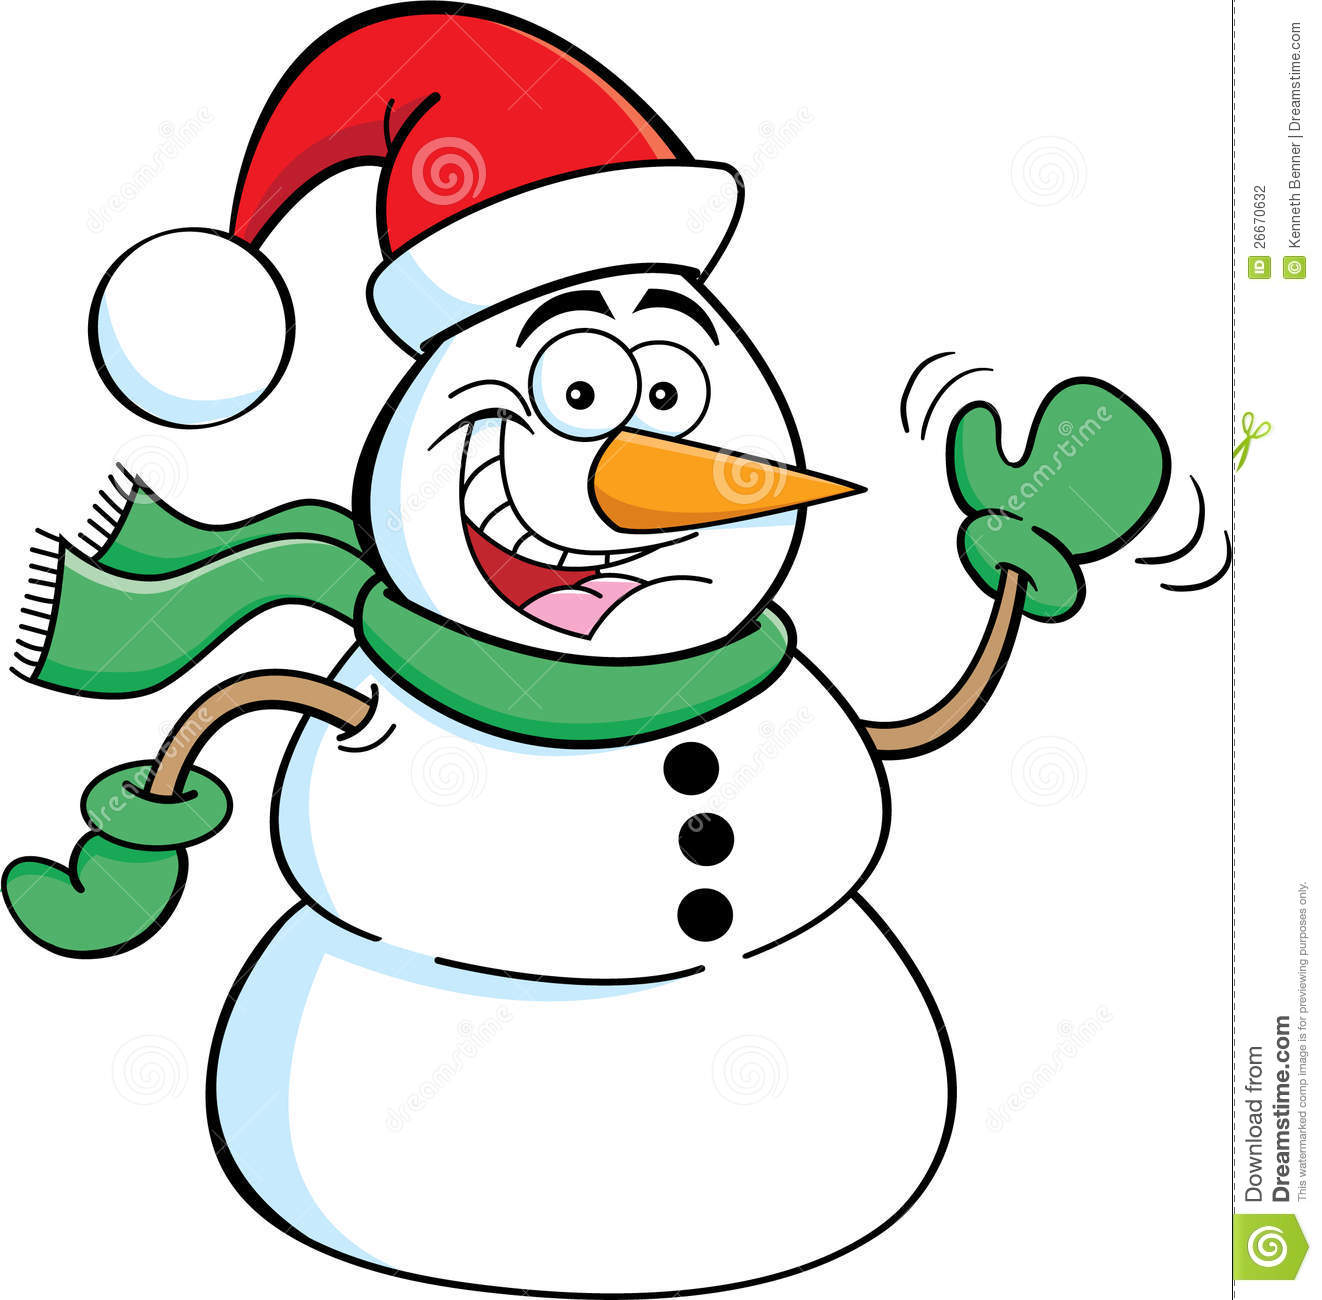 1322x1300 Snowman Clipart, Suggestions For Snowman Clipart, Download Snowman